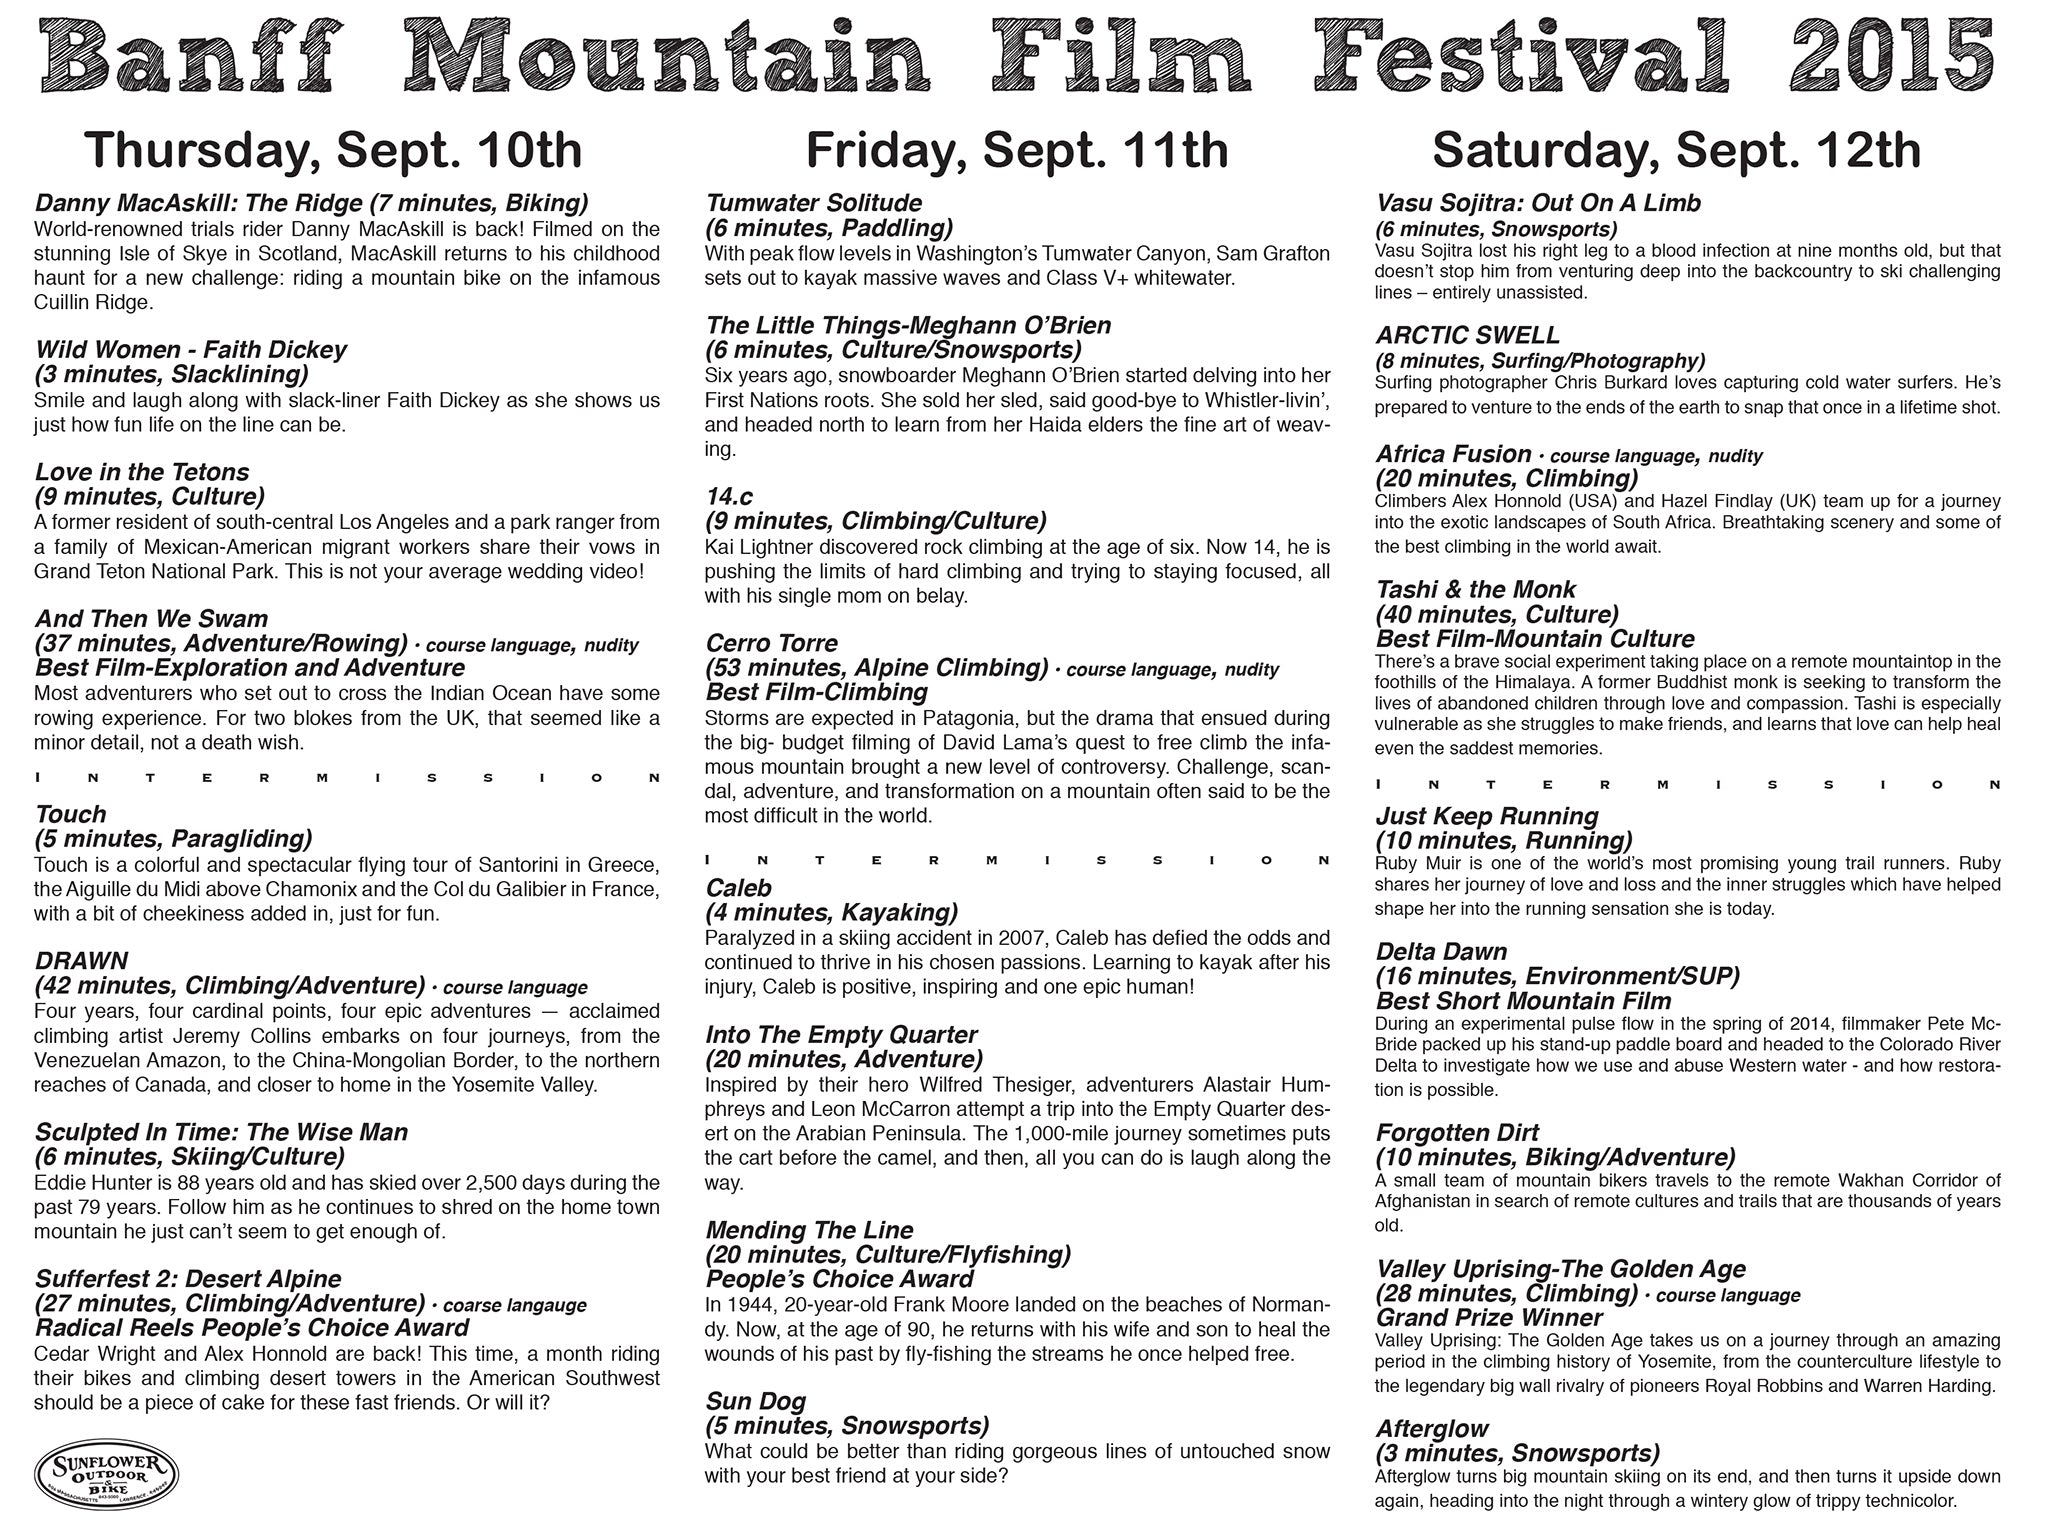 Banff Mountain Film Festival Tickets On Sale Now